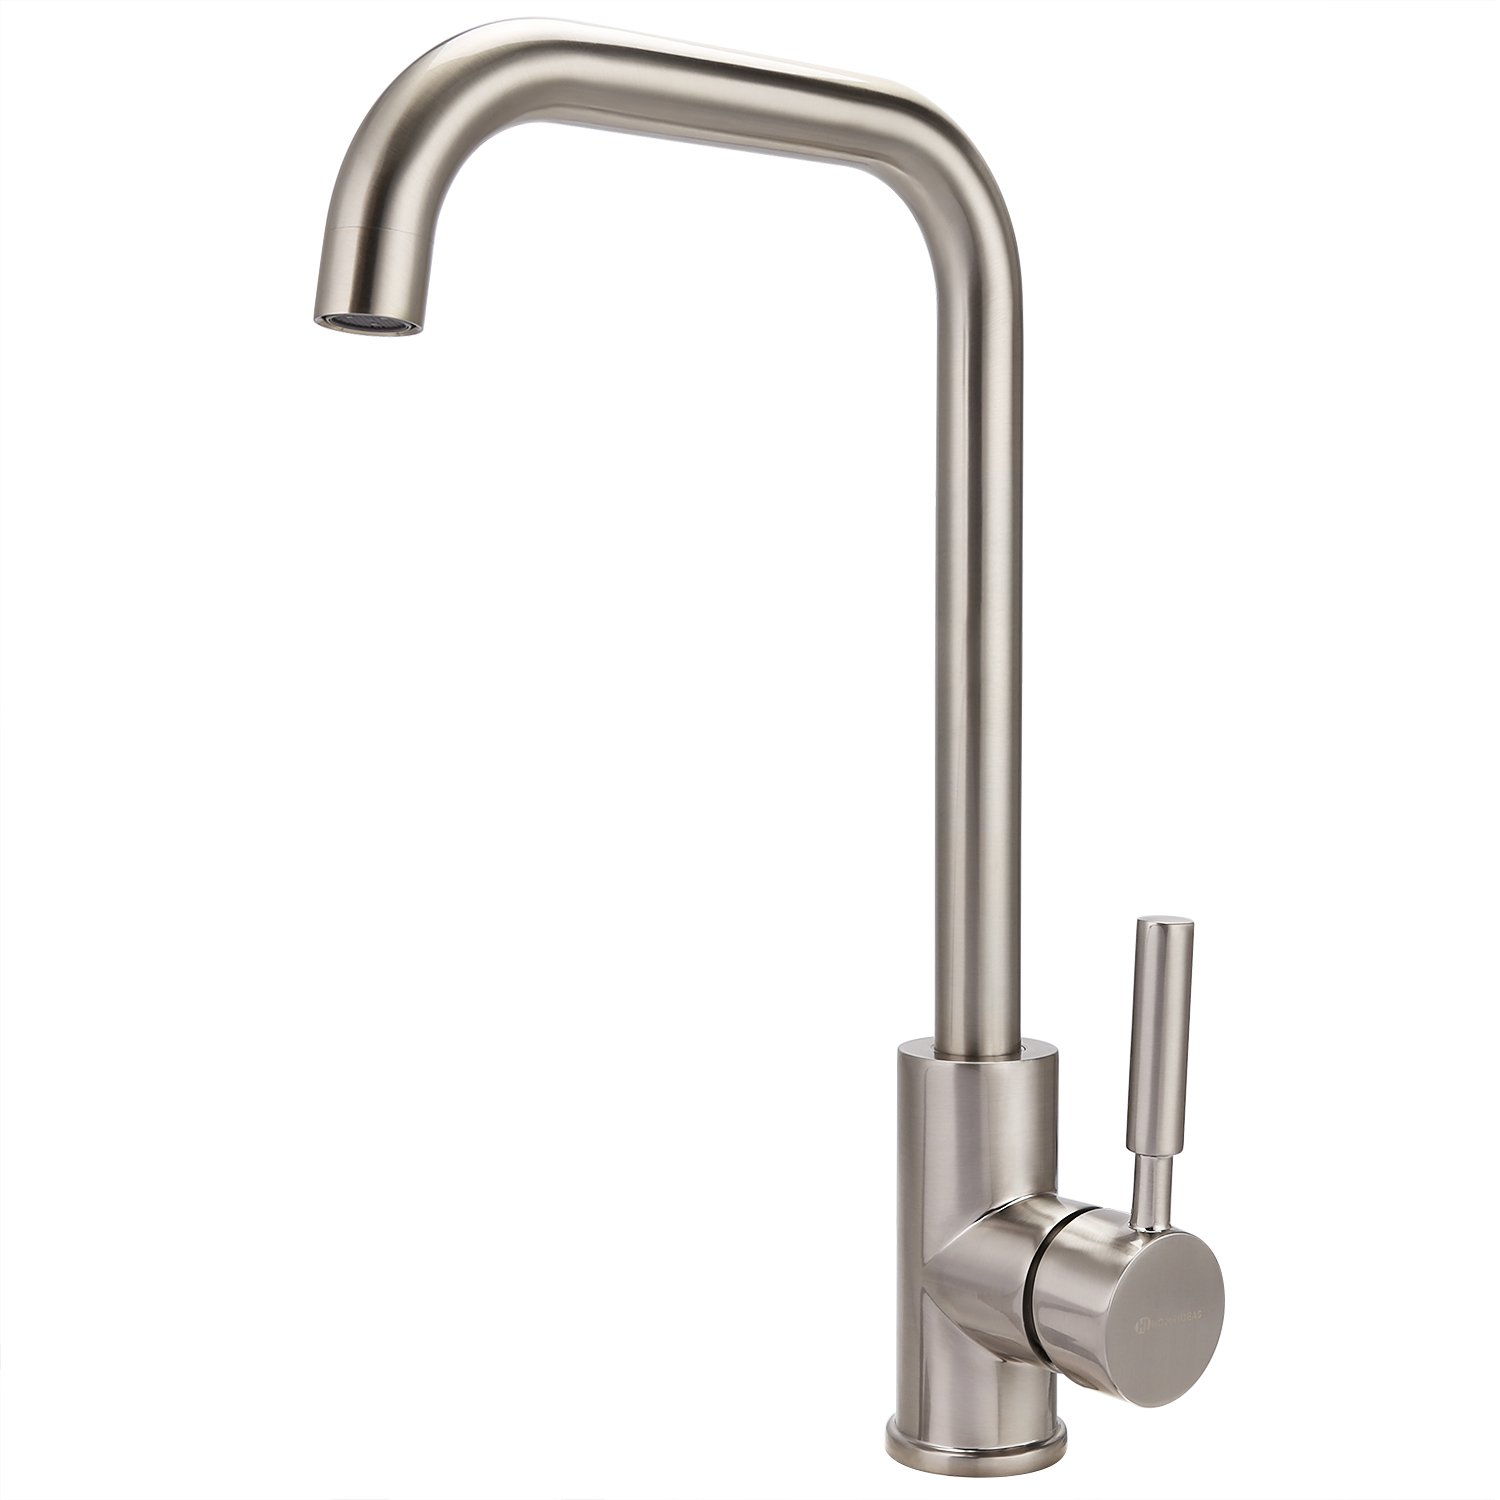 HOMEIDEAS Kitchen Sink Faucet,Hot and Cold Single Handle Water Faucets 360 Degree Swivel Brushed Nickel Finished, Food Grade 304 Stainless Steel